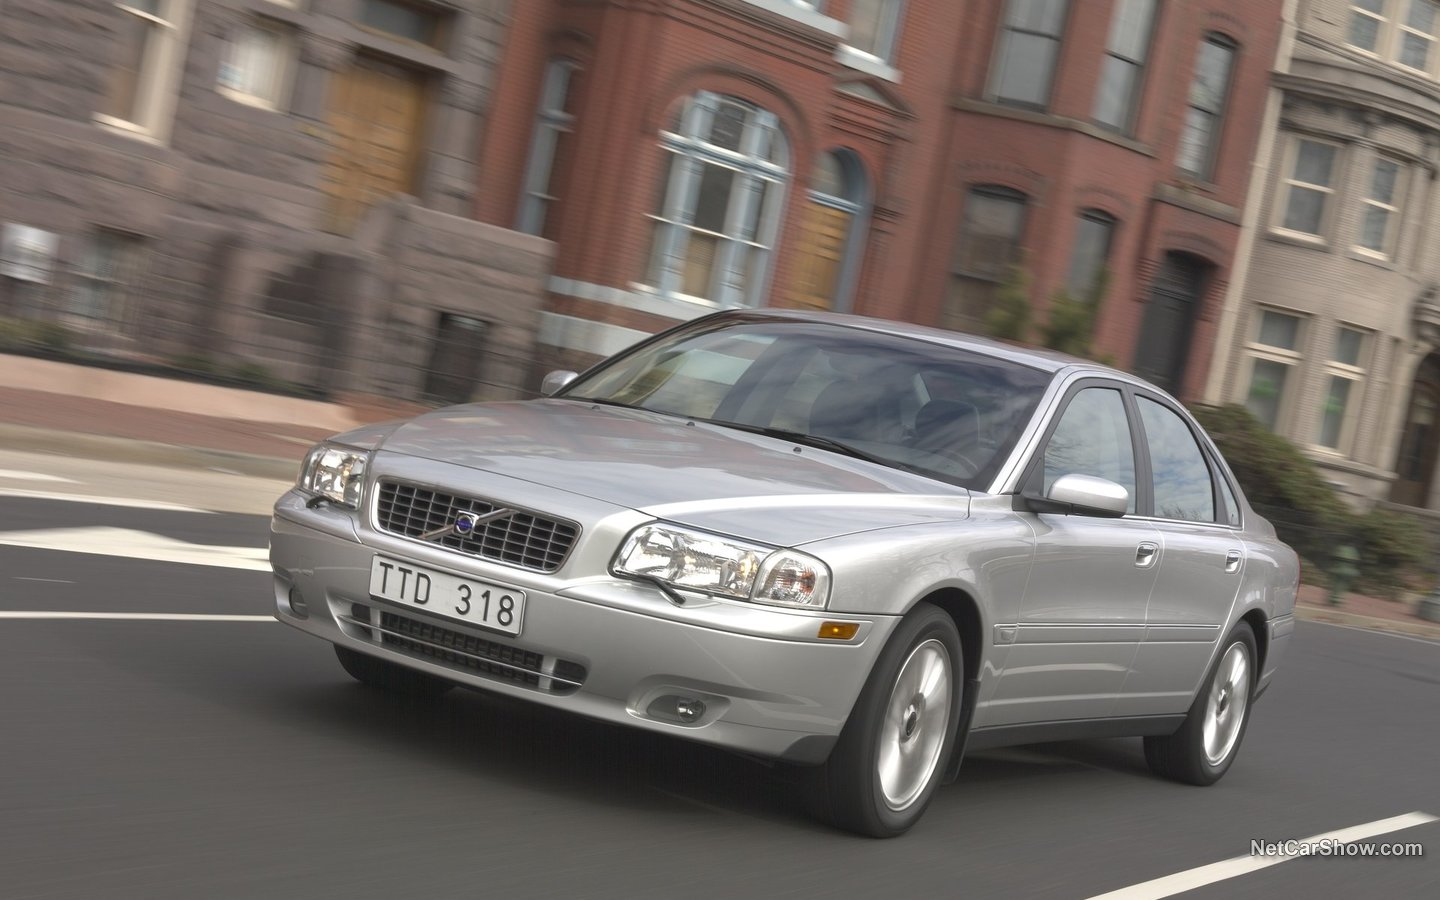 Volvo S80 2003 adc6f16a